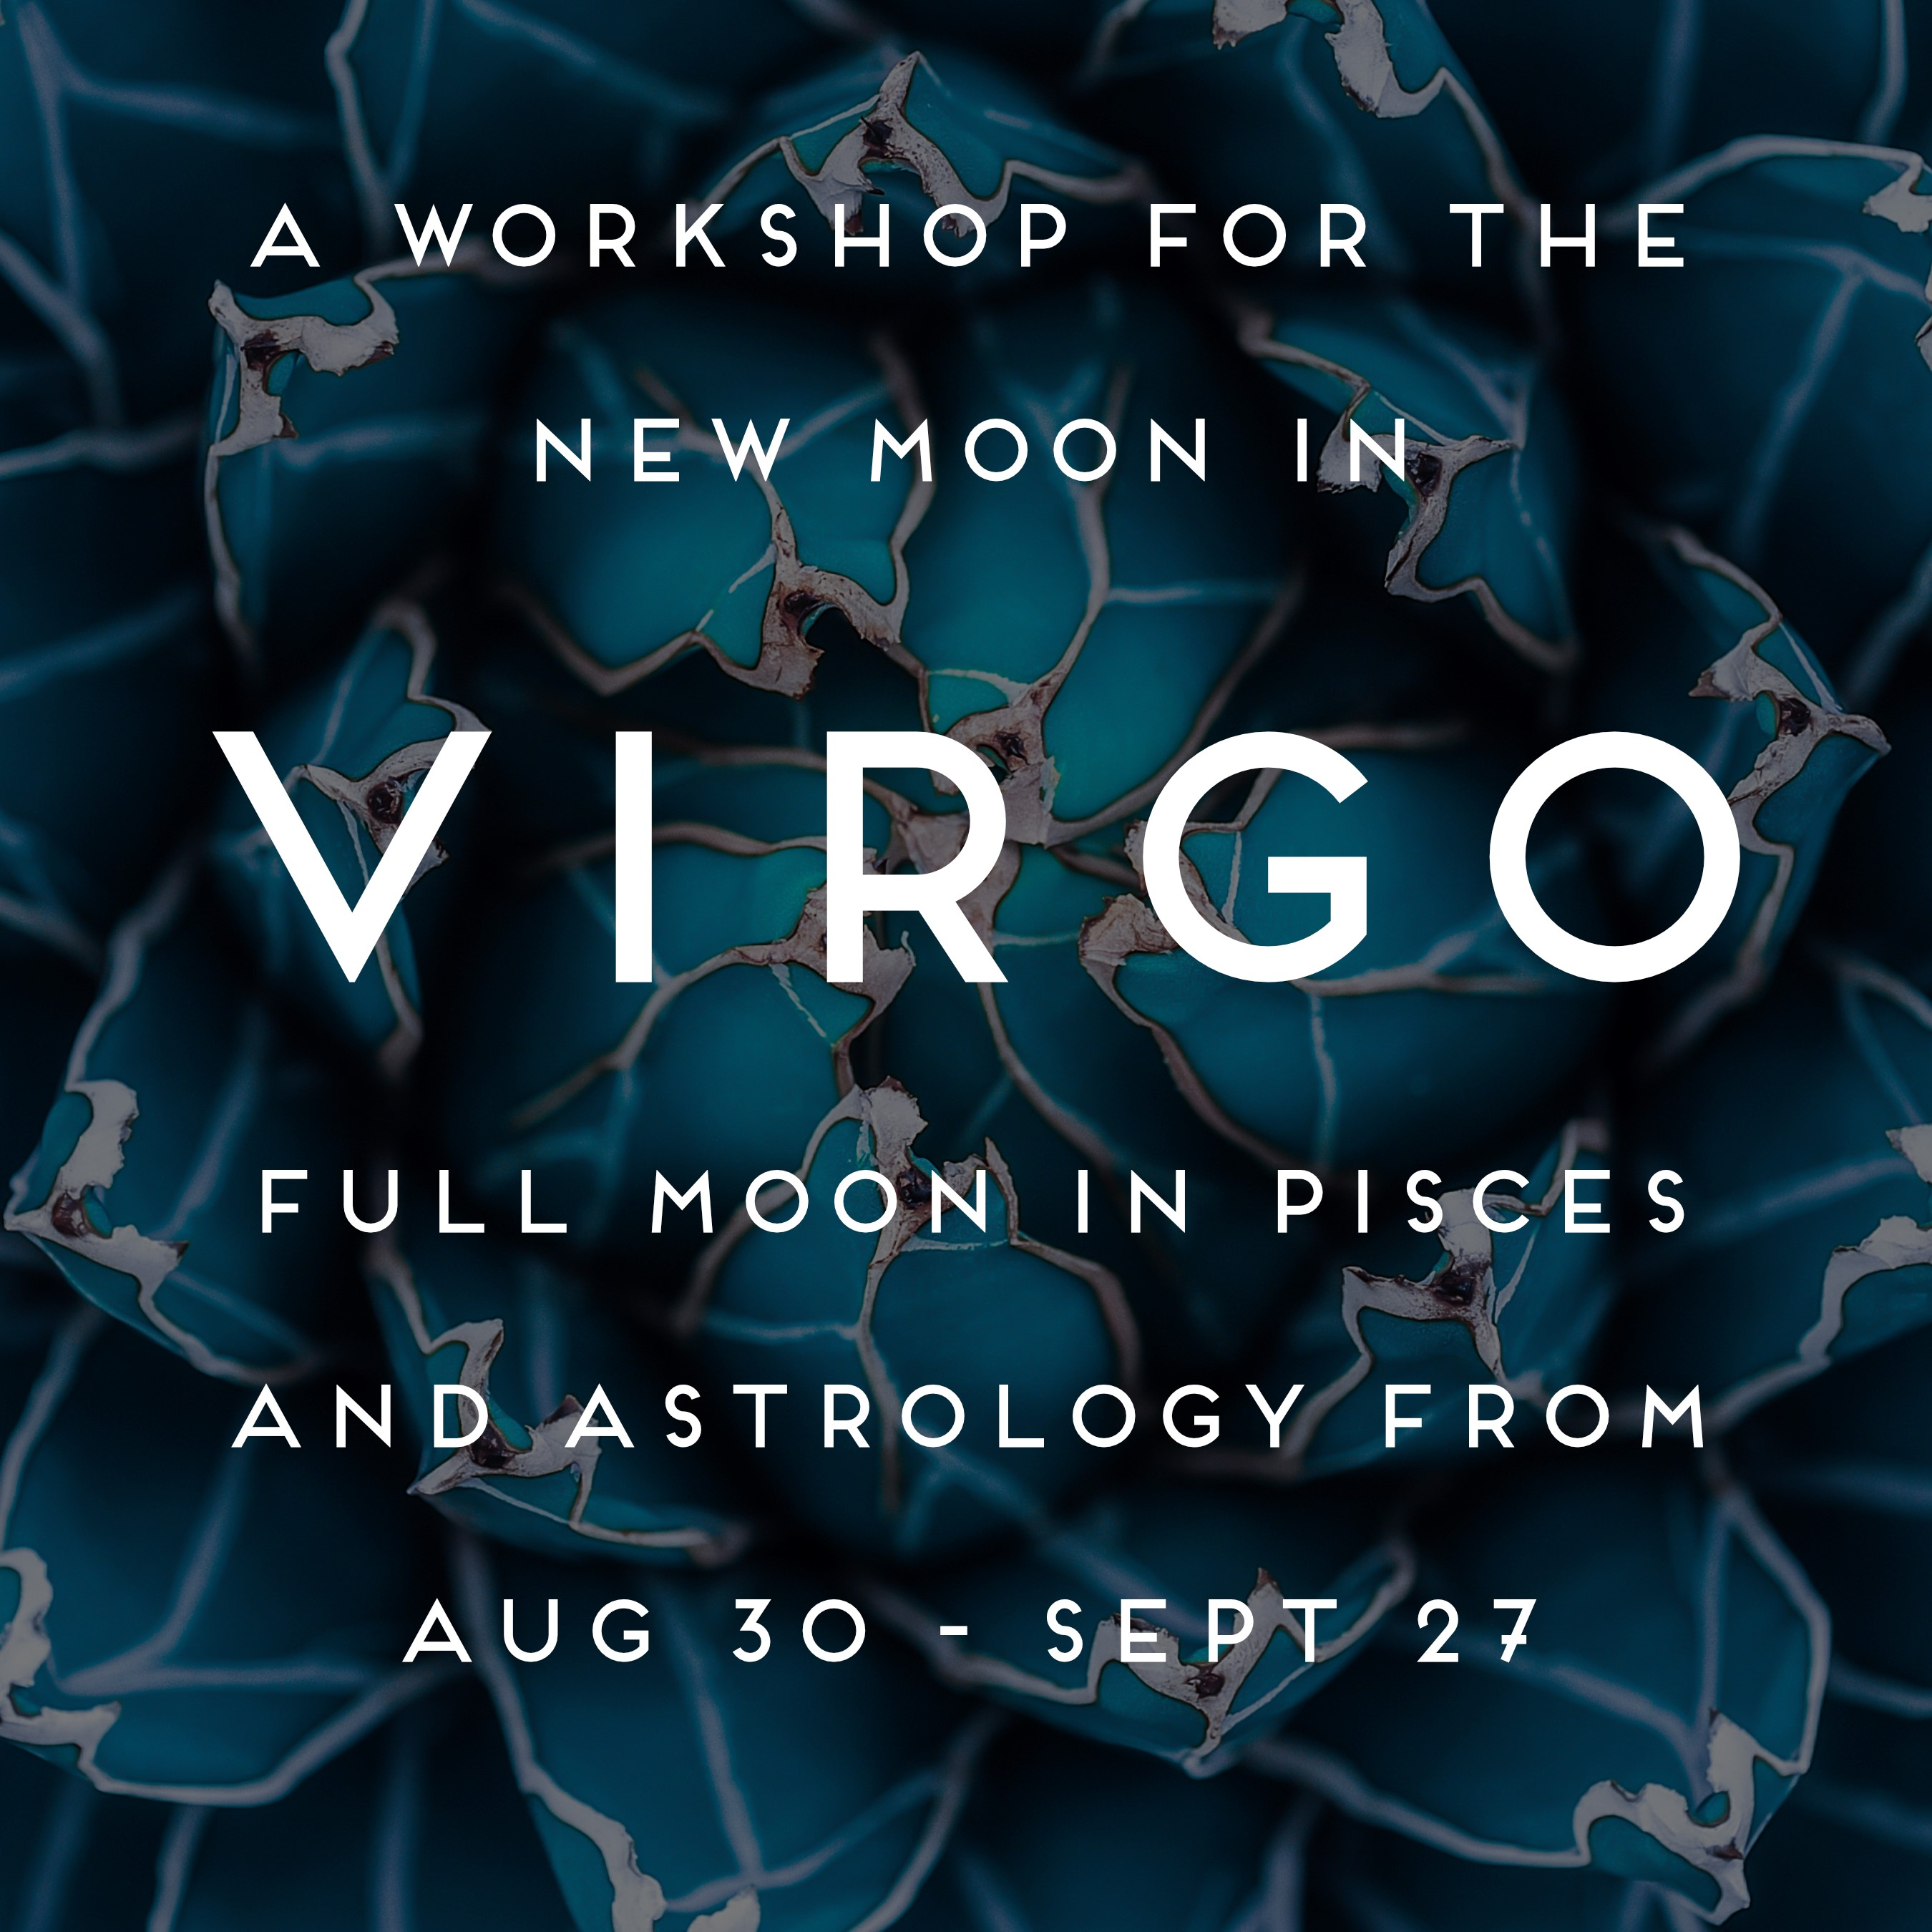 Horoscopes & Monthly Astrology from Chani Nicholas | Chani